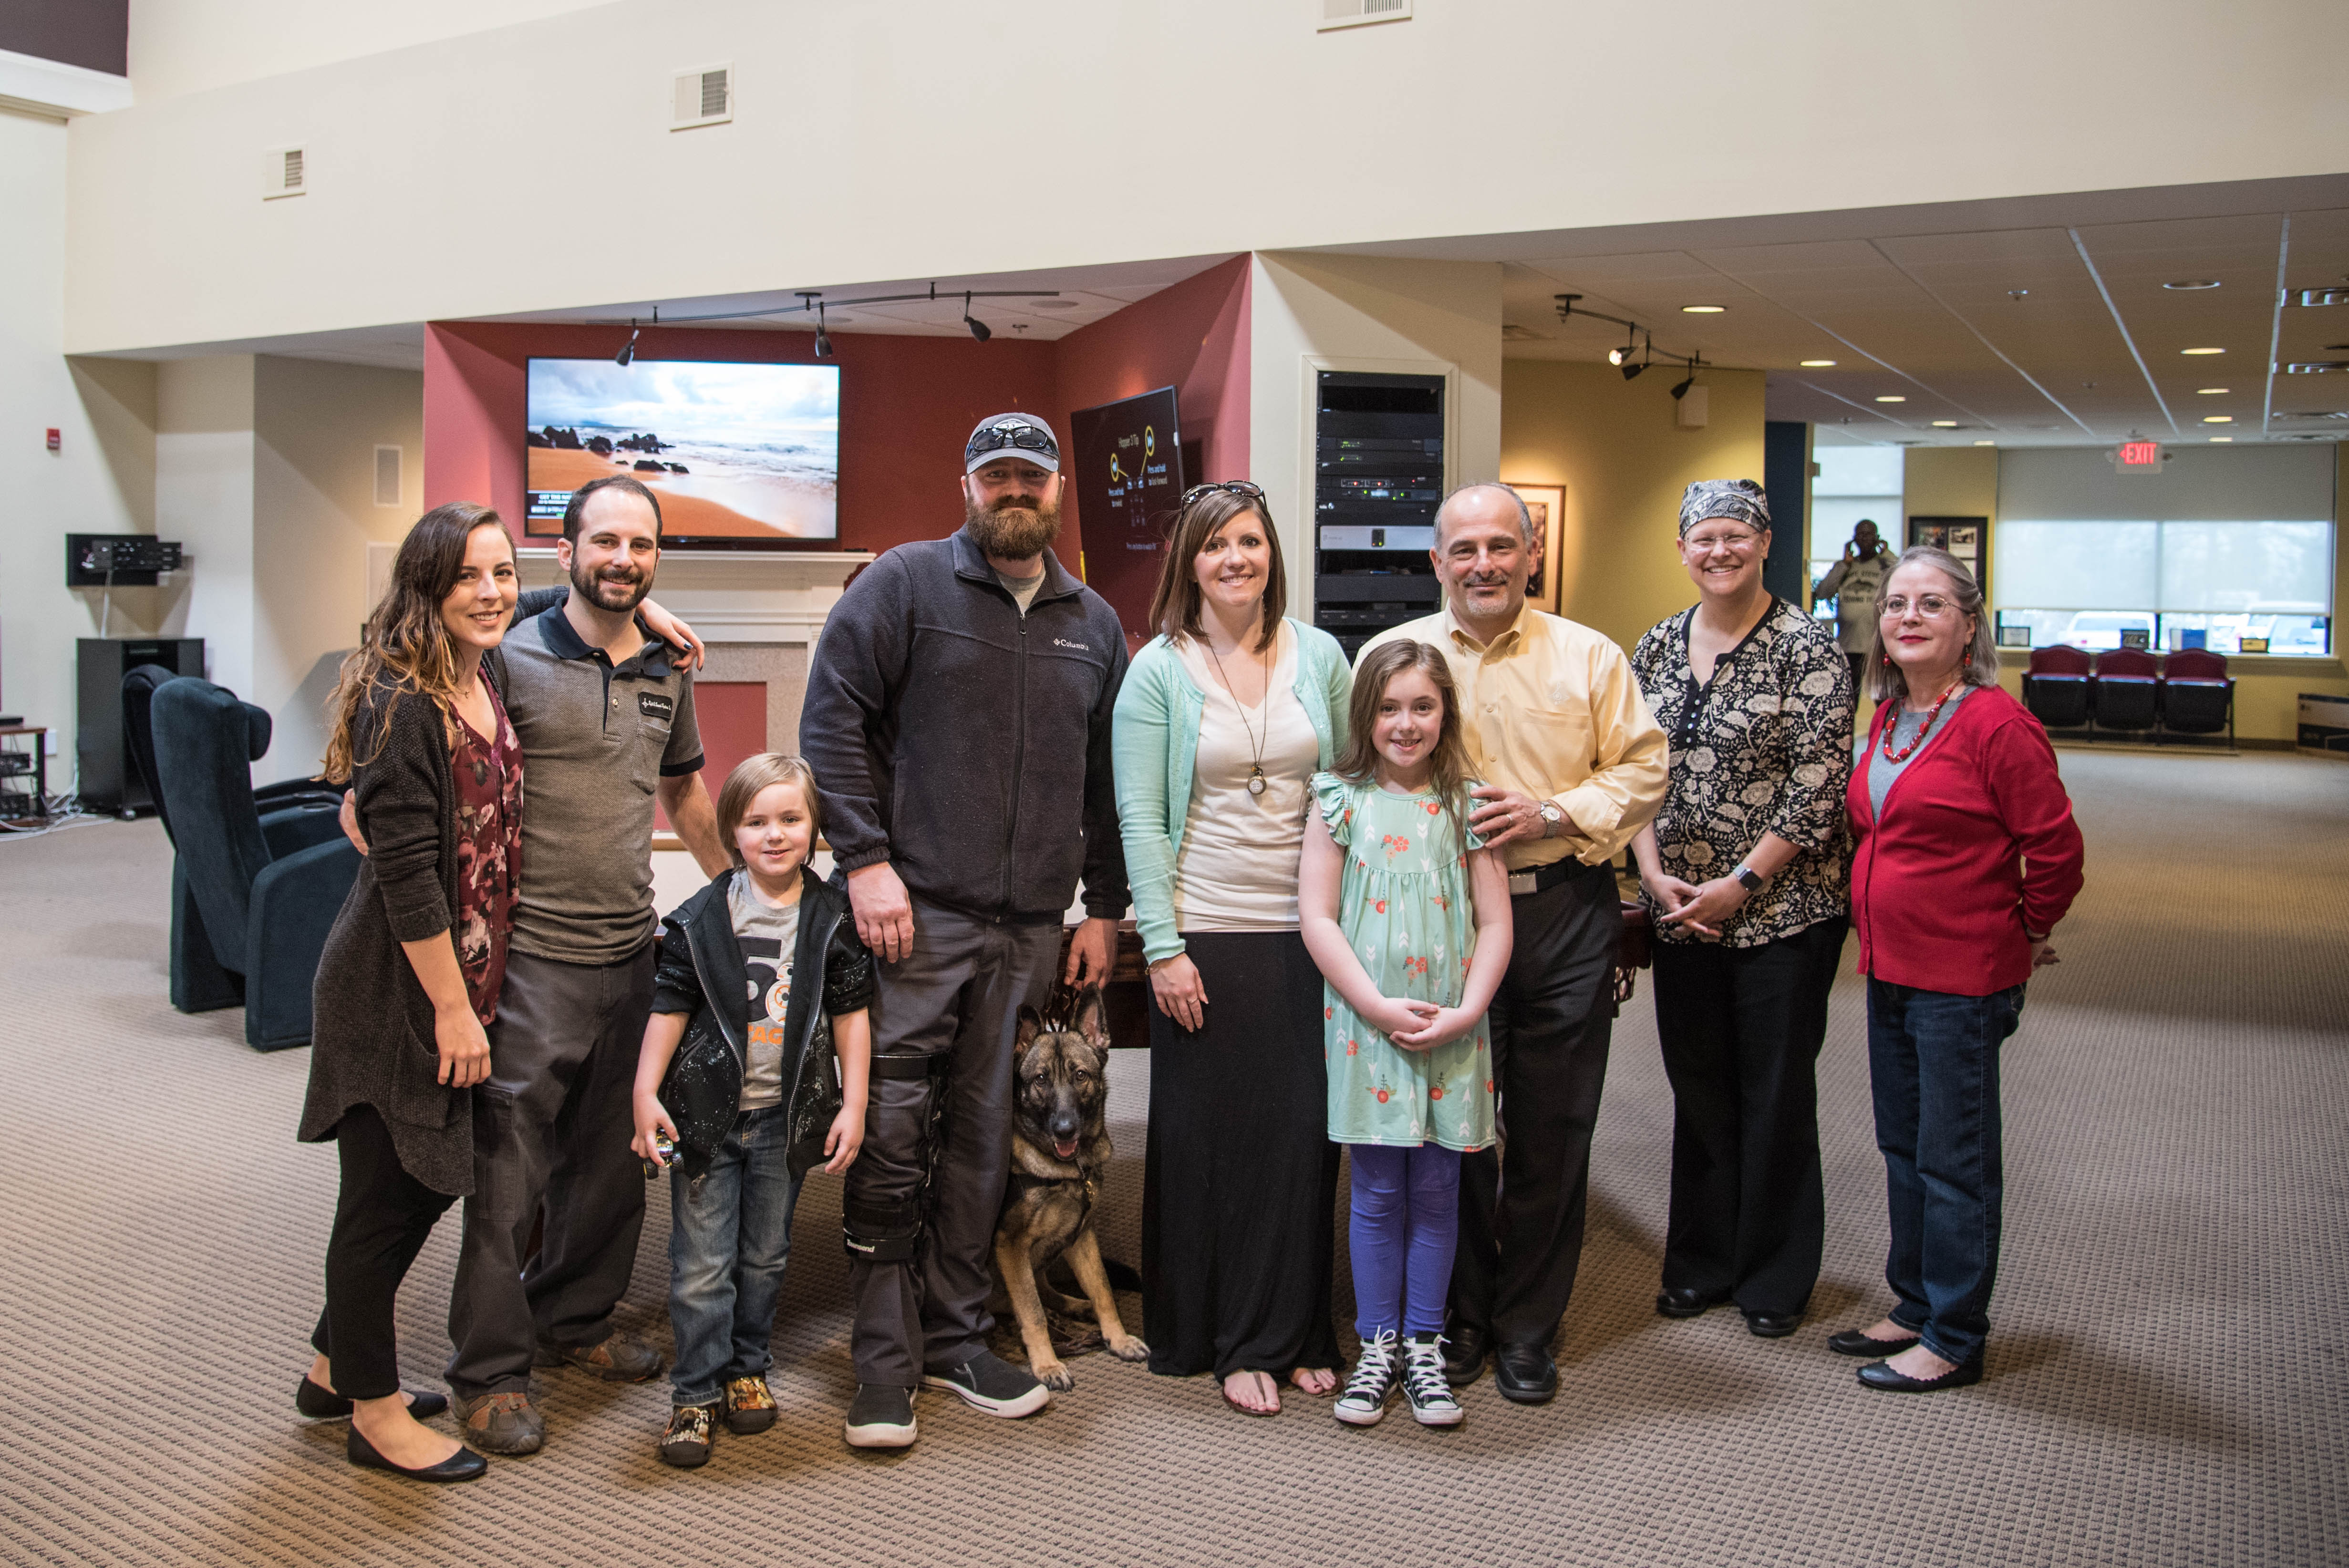 The Goodrich family, the Sight & Sound team, and others celebrate the new home.